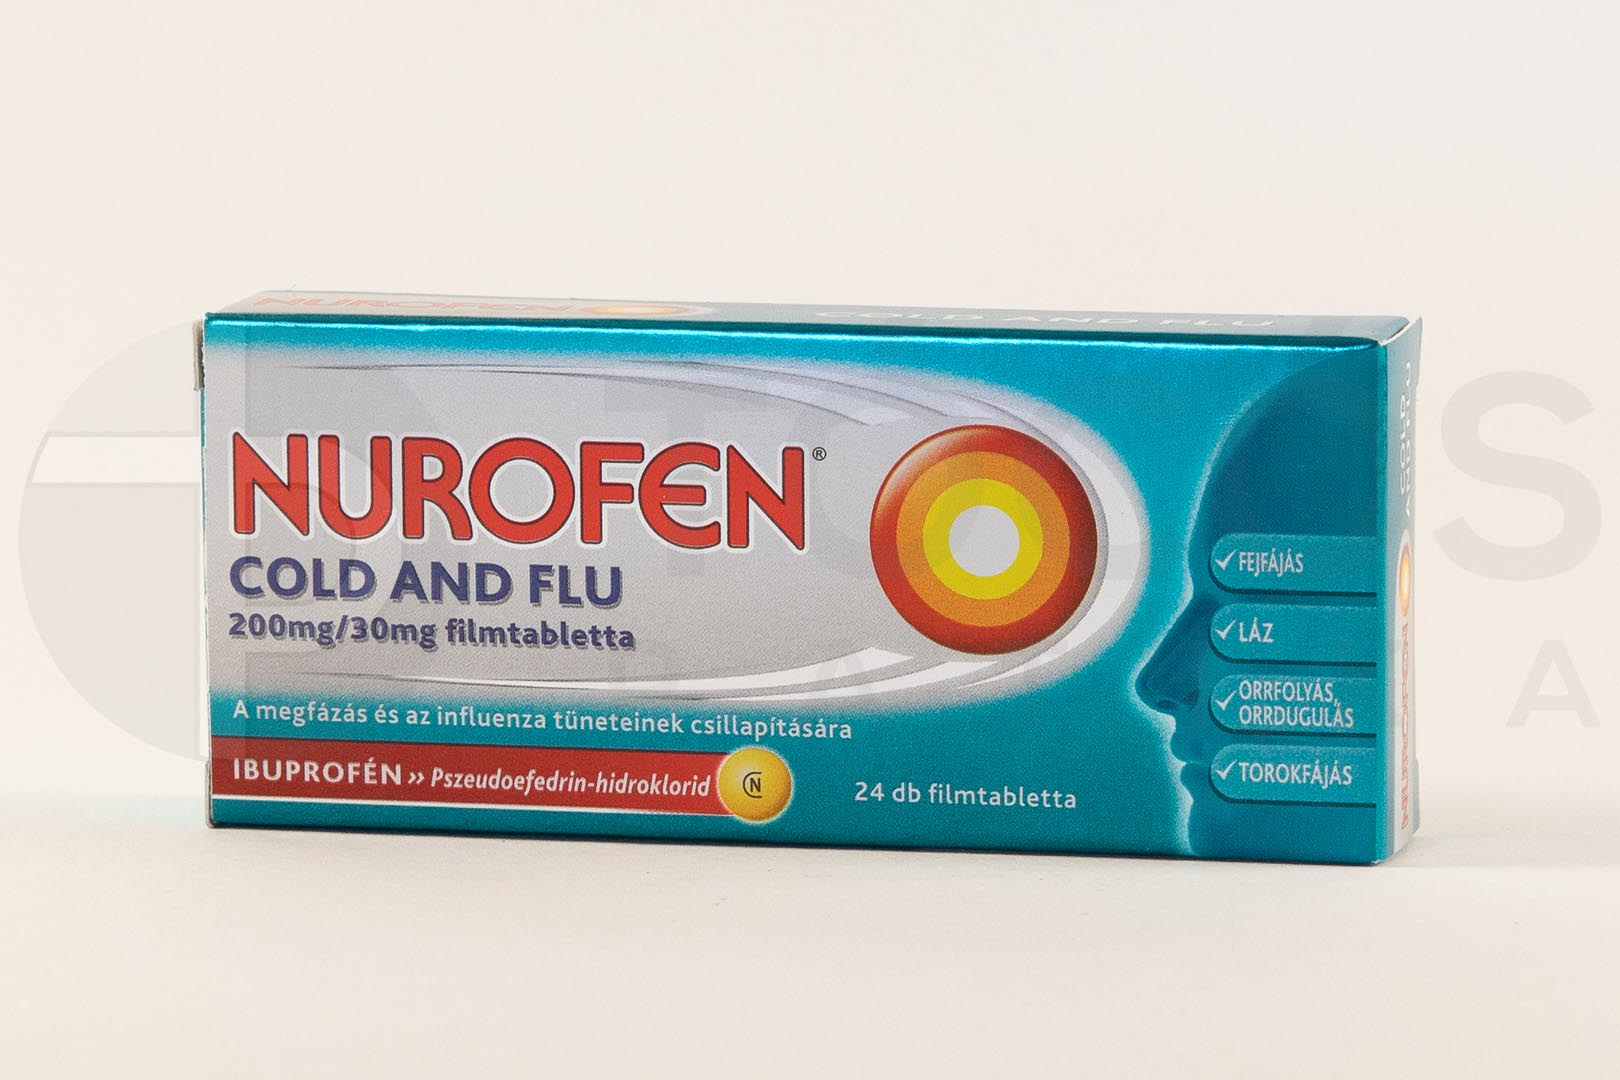 Nurofen Cold and Flu 200 mg/30 mg filmtabletta 24x